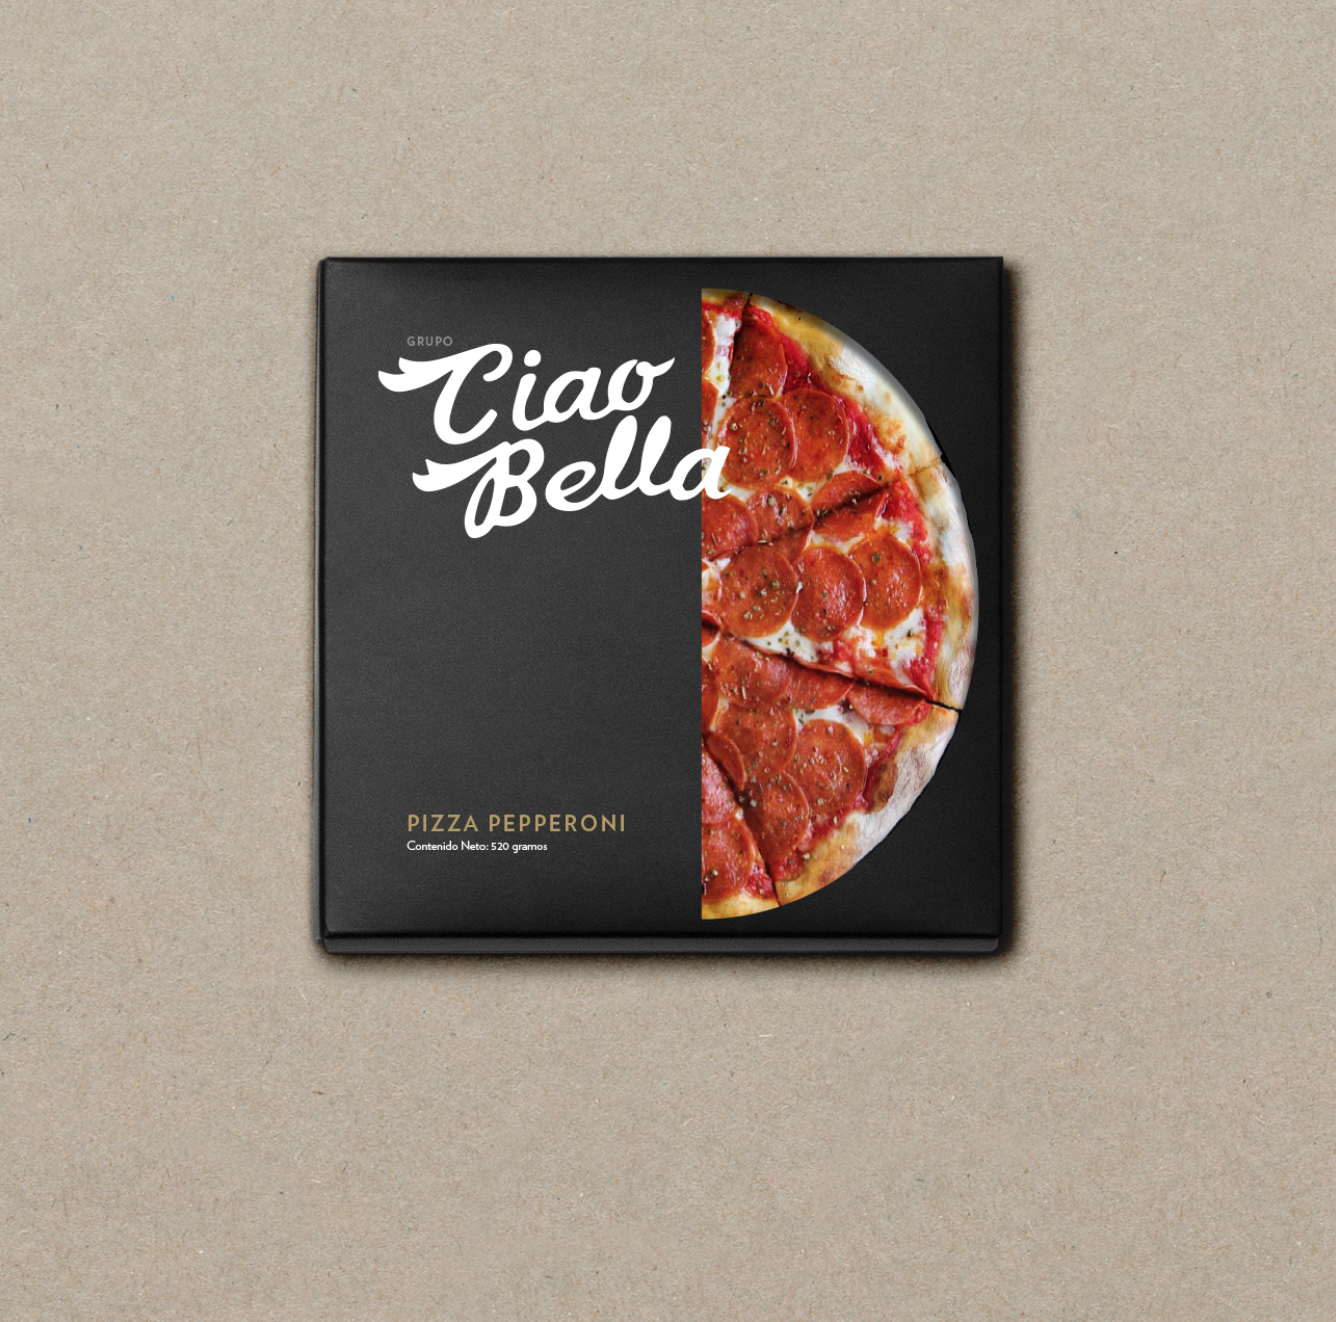 Package design for Ciao Bella Panama